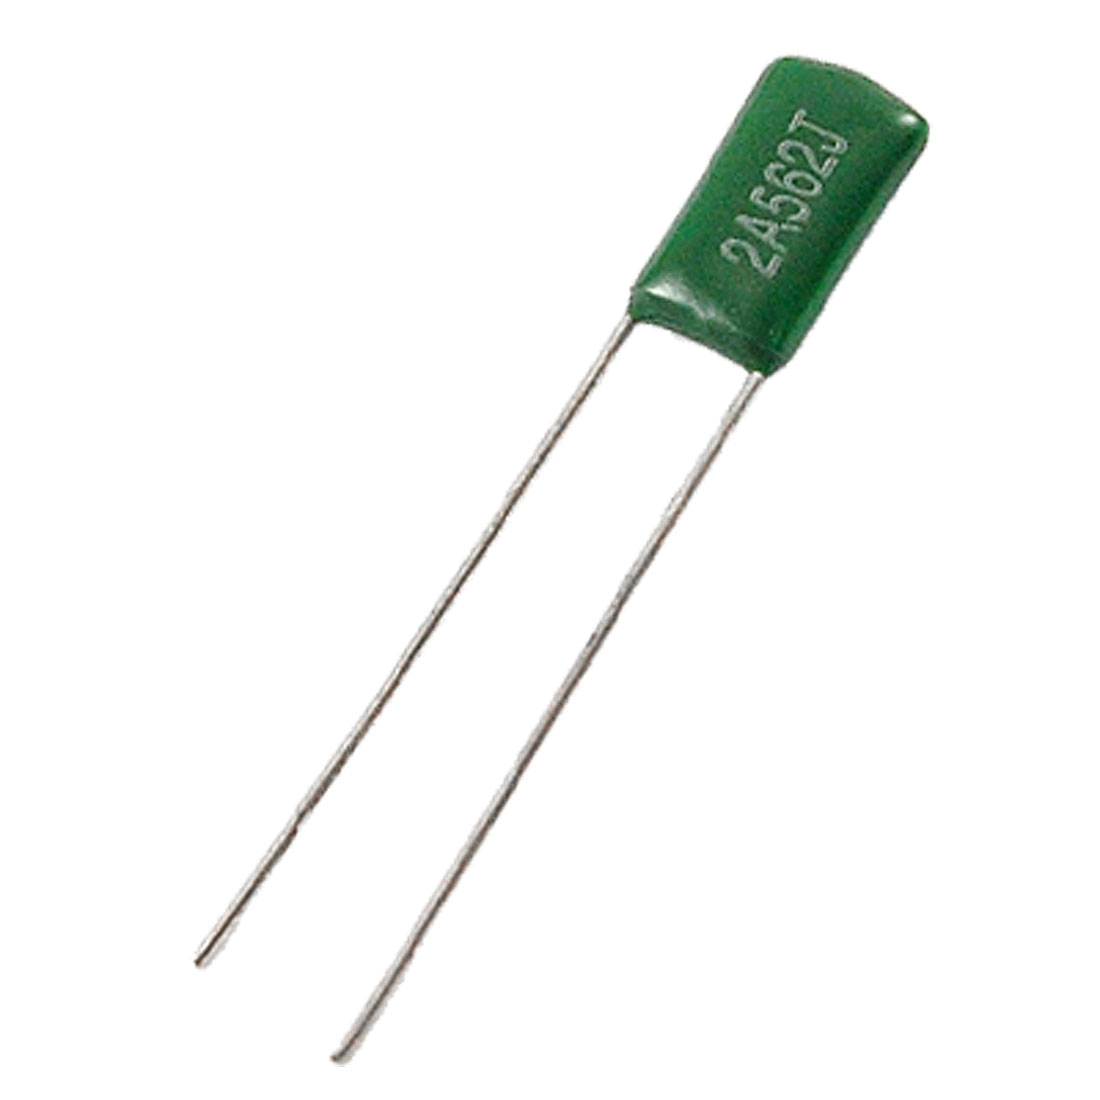 0.0056uF 5600pF 100V Mylar Polyester Film Capacitors(Bag of 100)